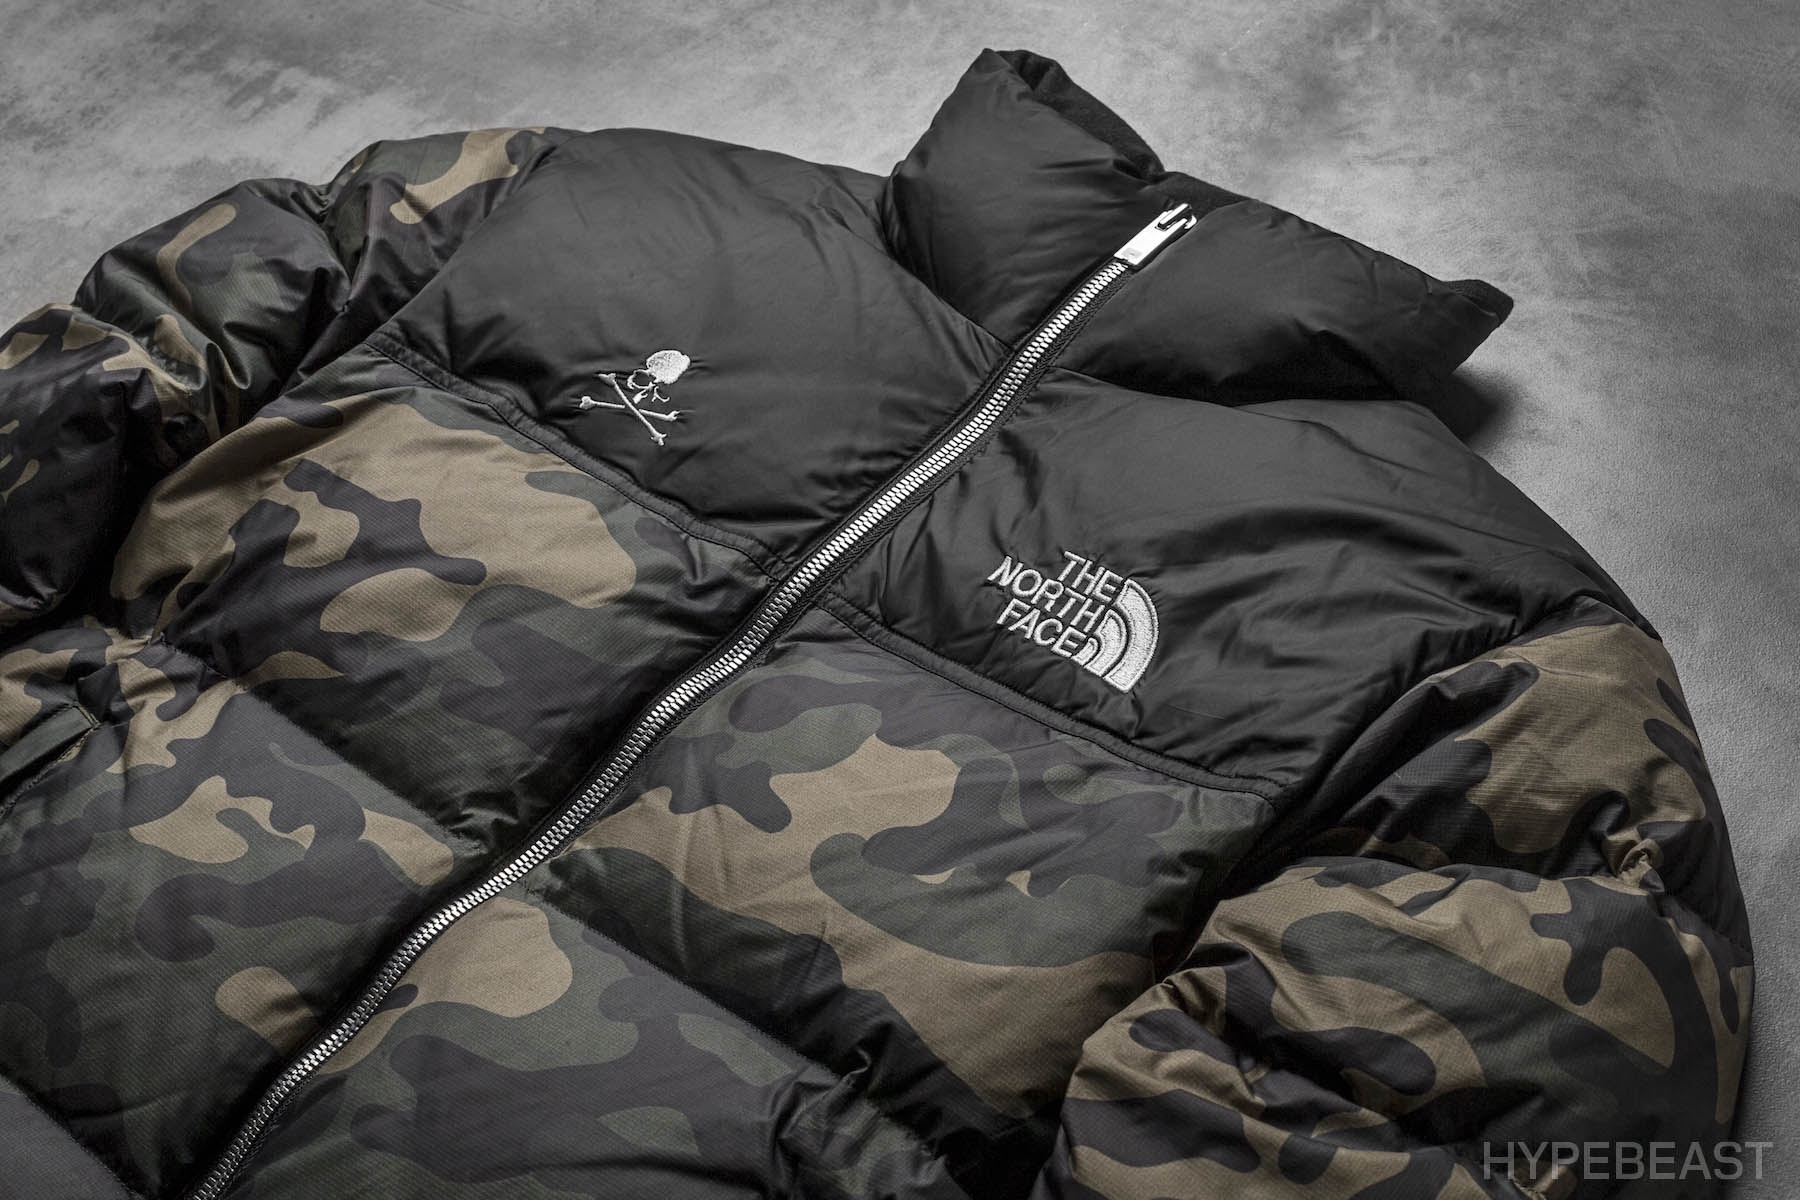 http---hypebeast.com-image-2017-04-mastermind-world-the-north-face-urban-exploration-2017-full-lookbook-8